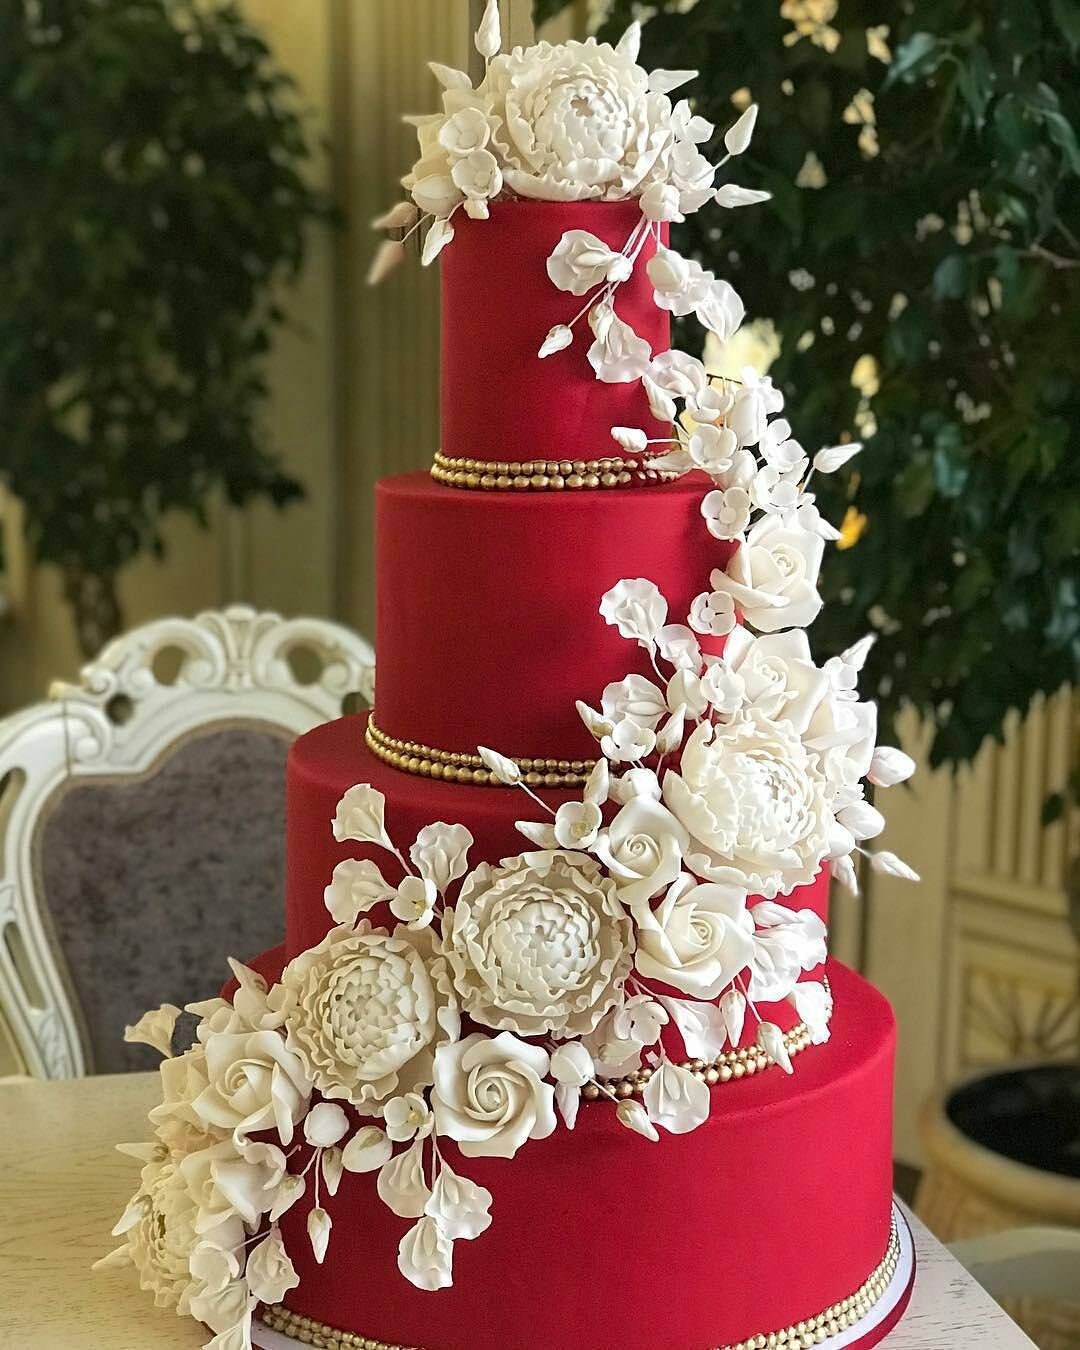 wedding cake red cake cakebakeoffng no instagram quot cake 23659